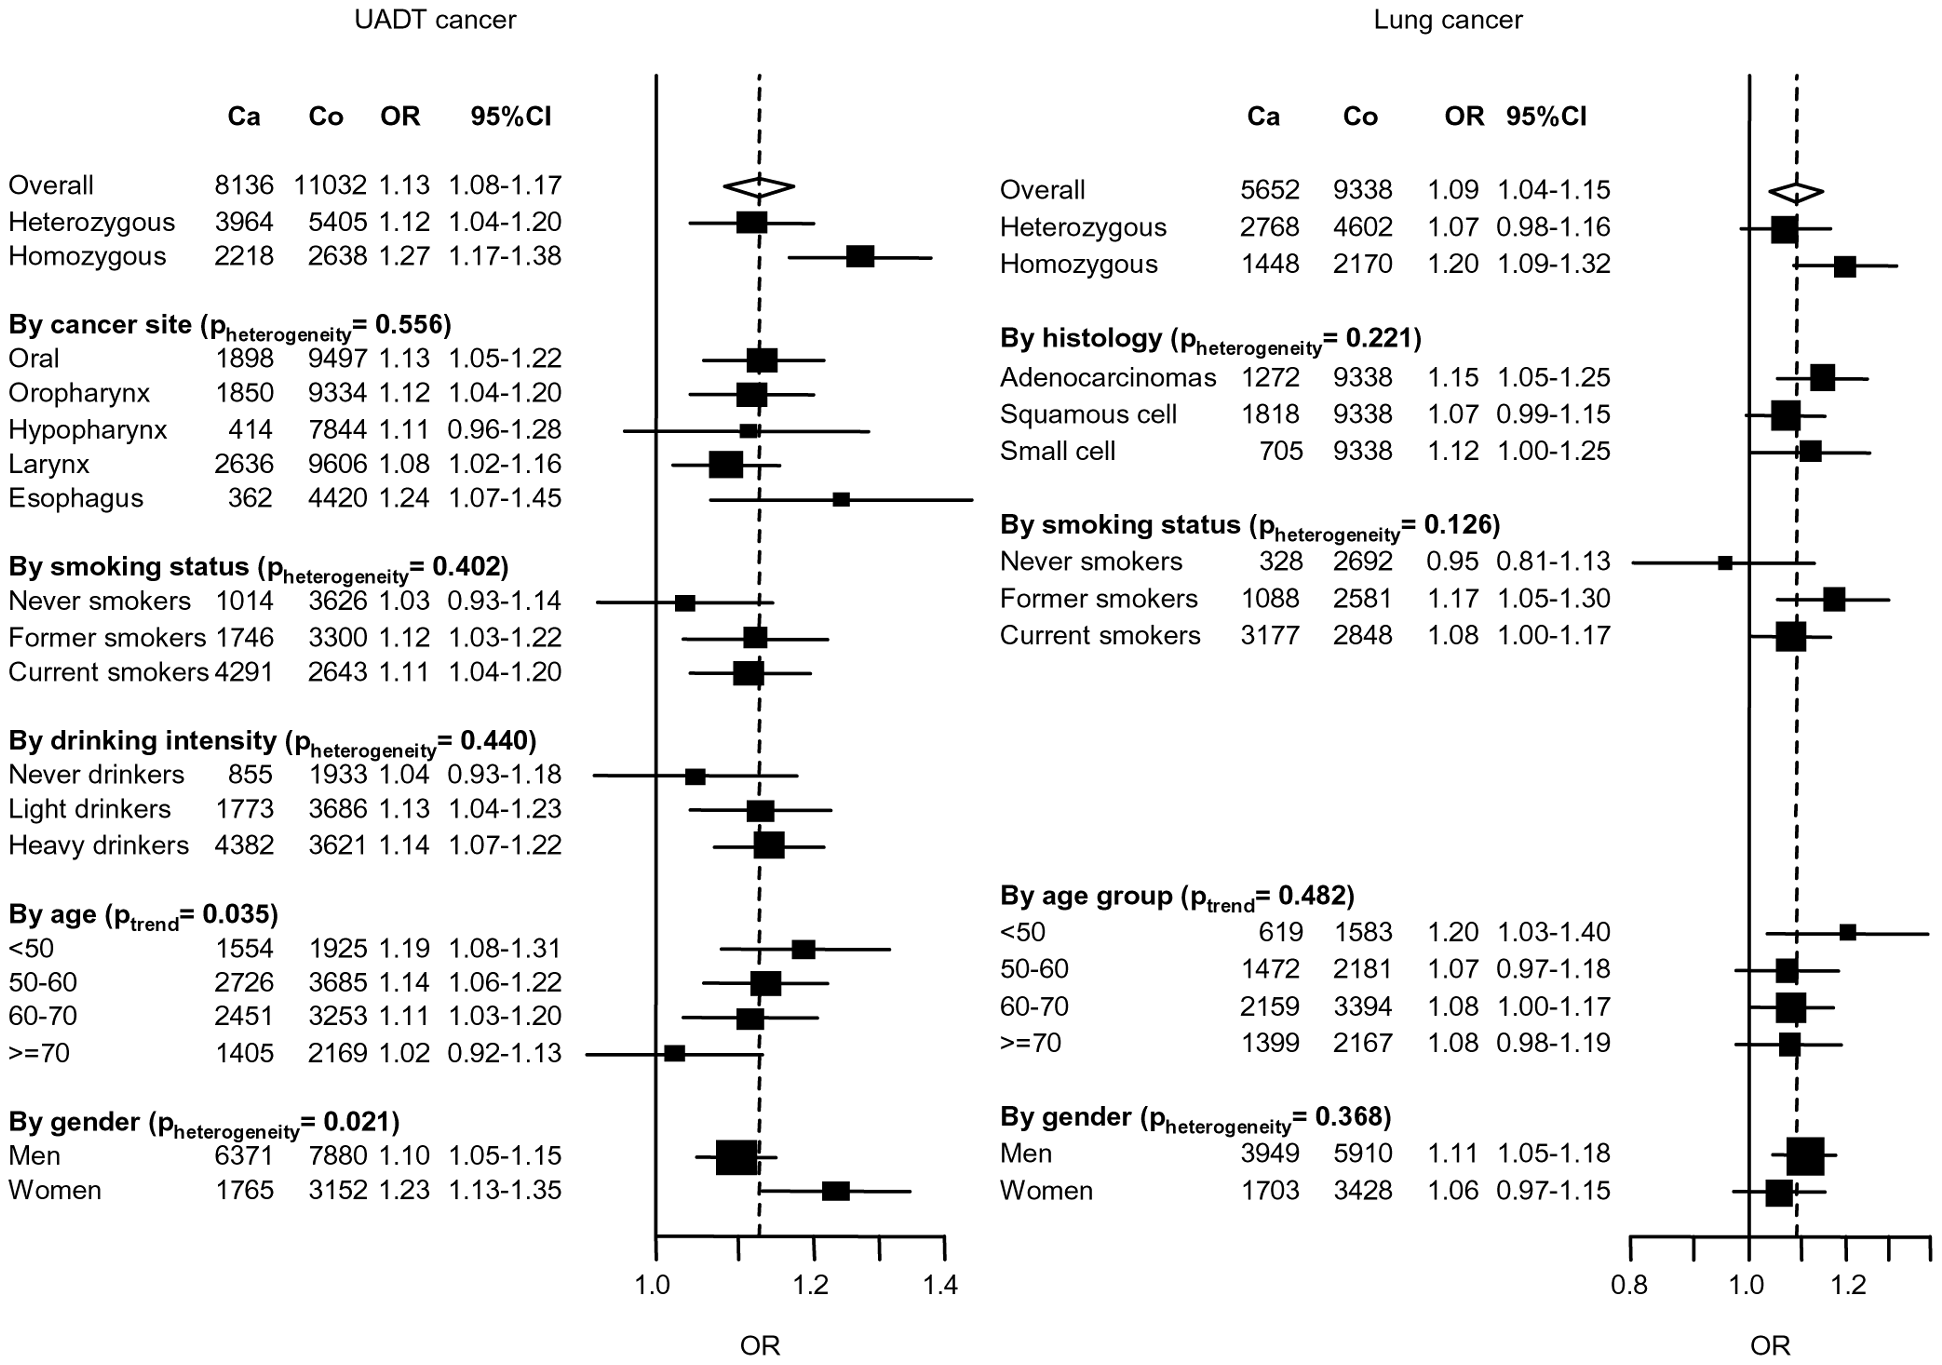 Association between 4q21 variant (rs1494961) and UADT and lung cancers.